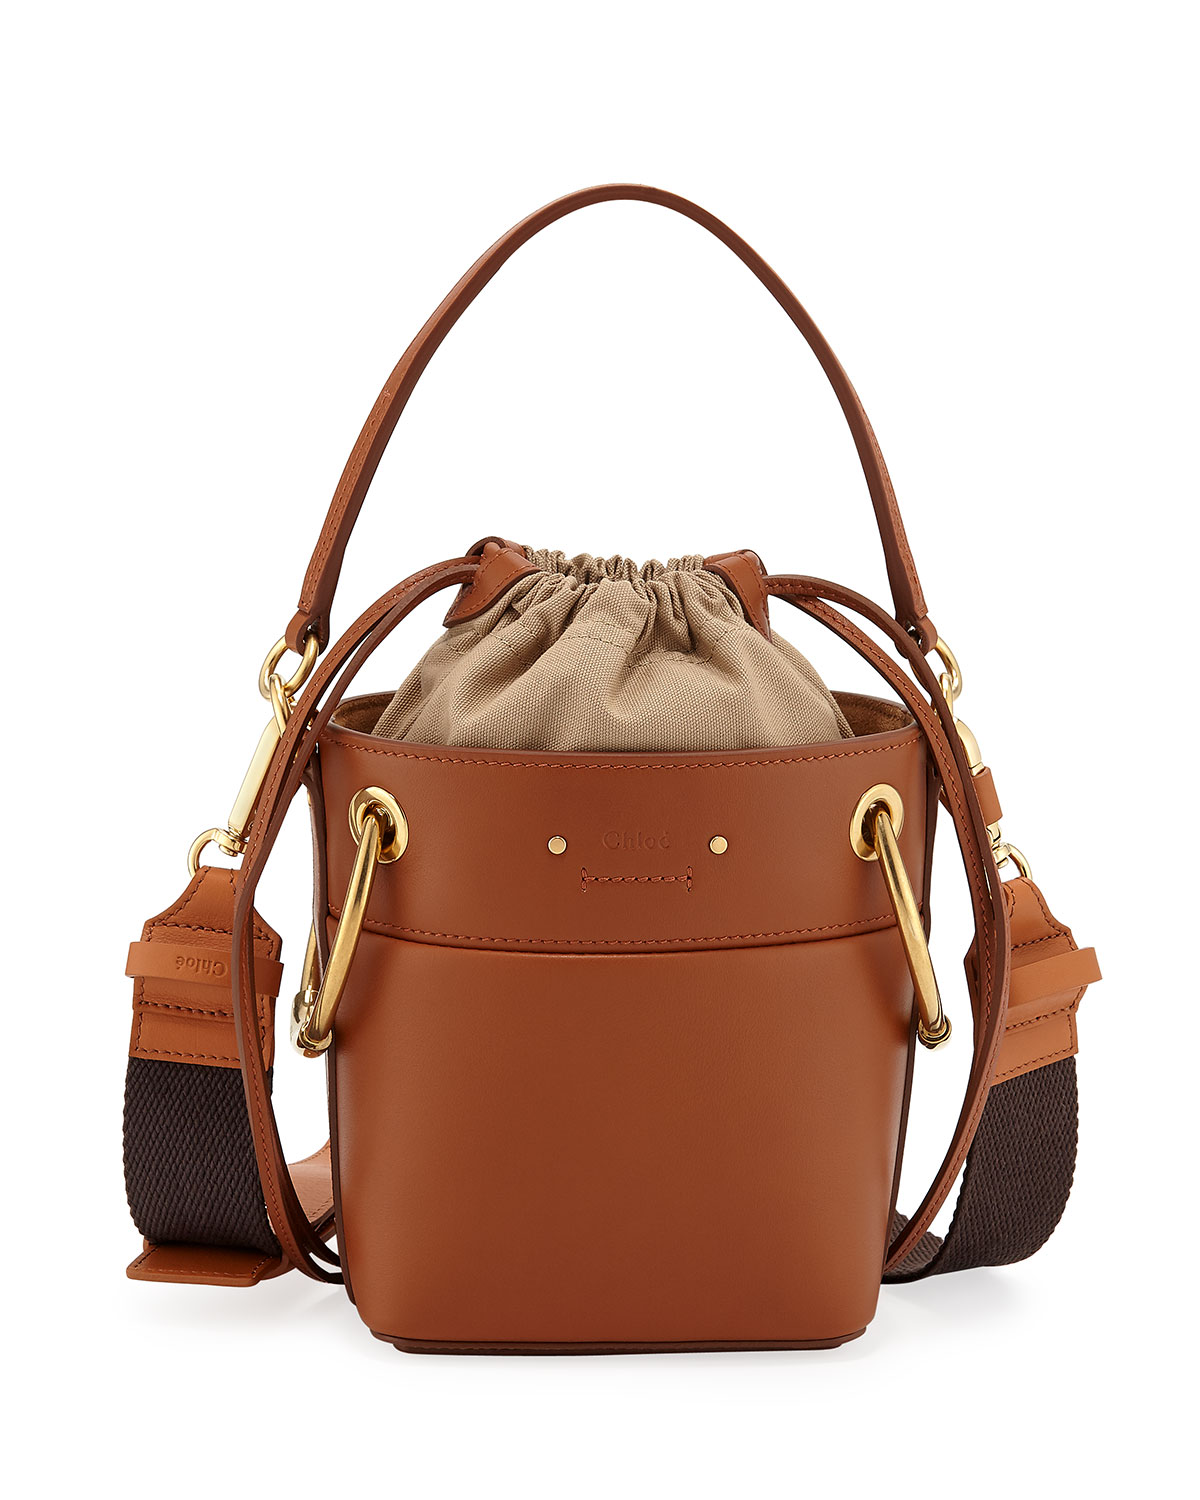 e7614a3dcbf5 Chloe Roy Mini Calf Leather Bucket Bag | Neiman Marcus